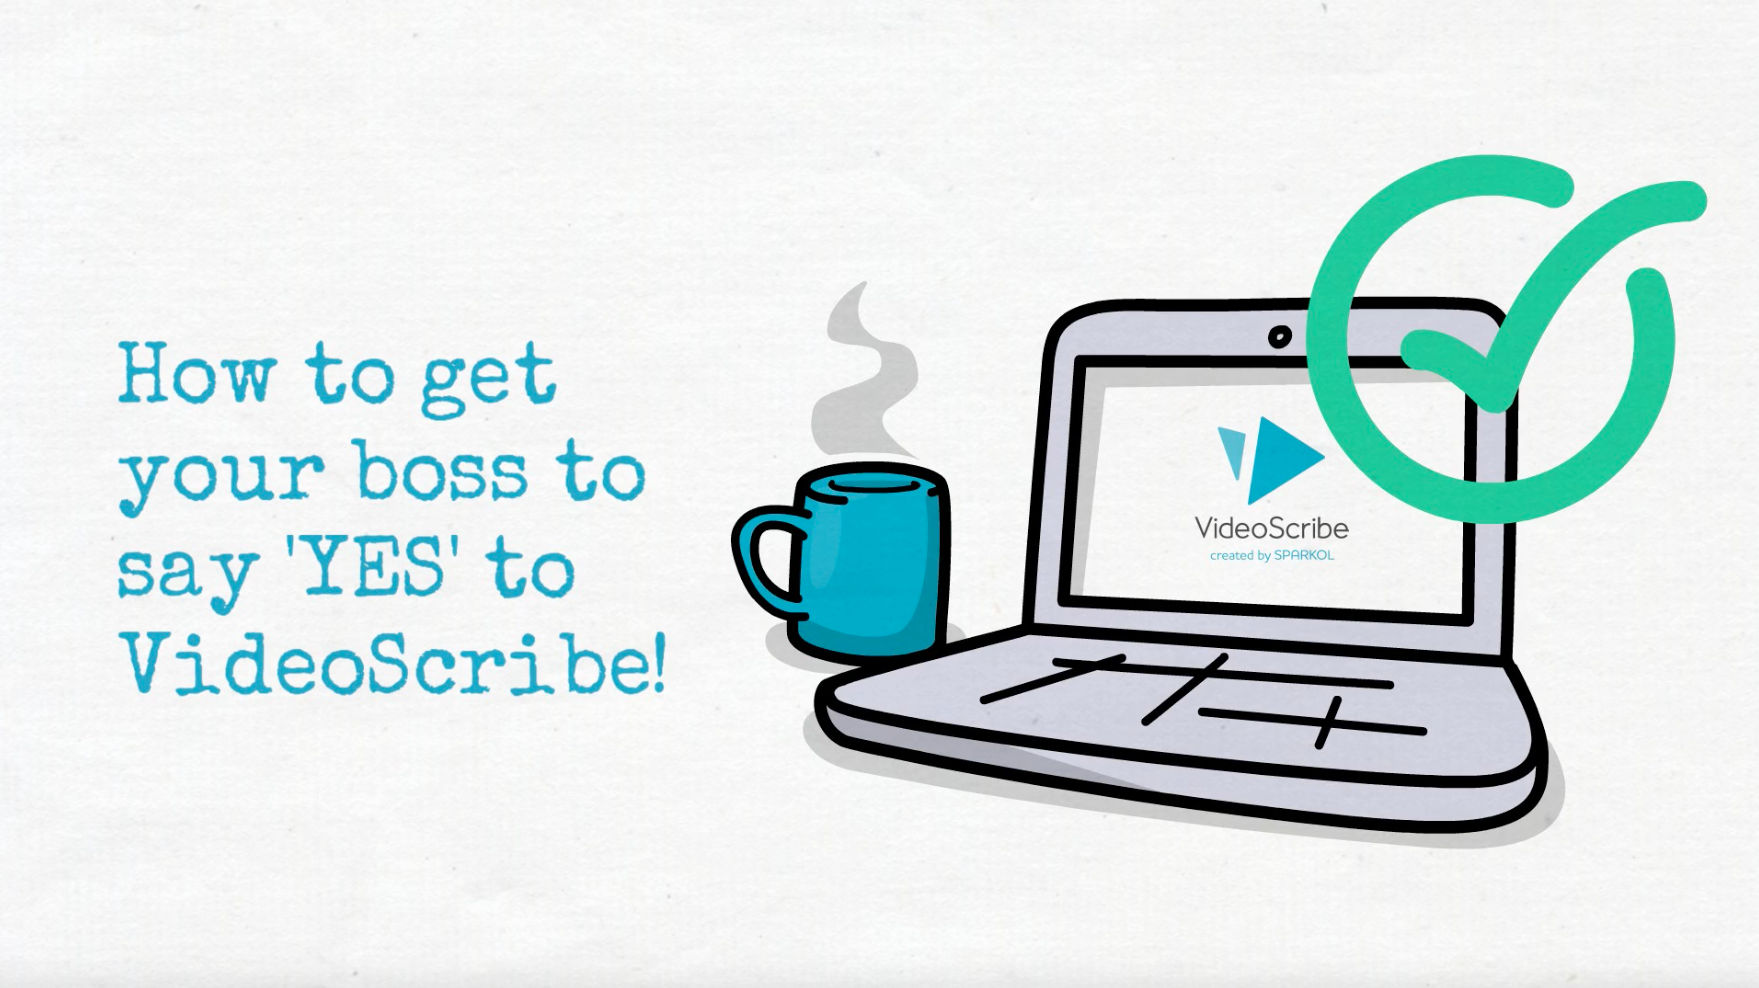 The secret to getting your boss to say 'yes' to buying VideoScribe video animation software